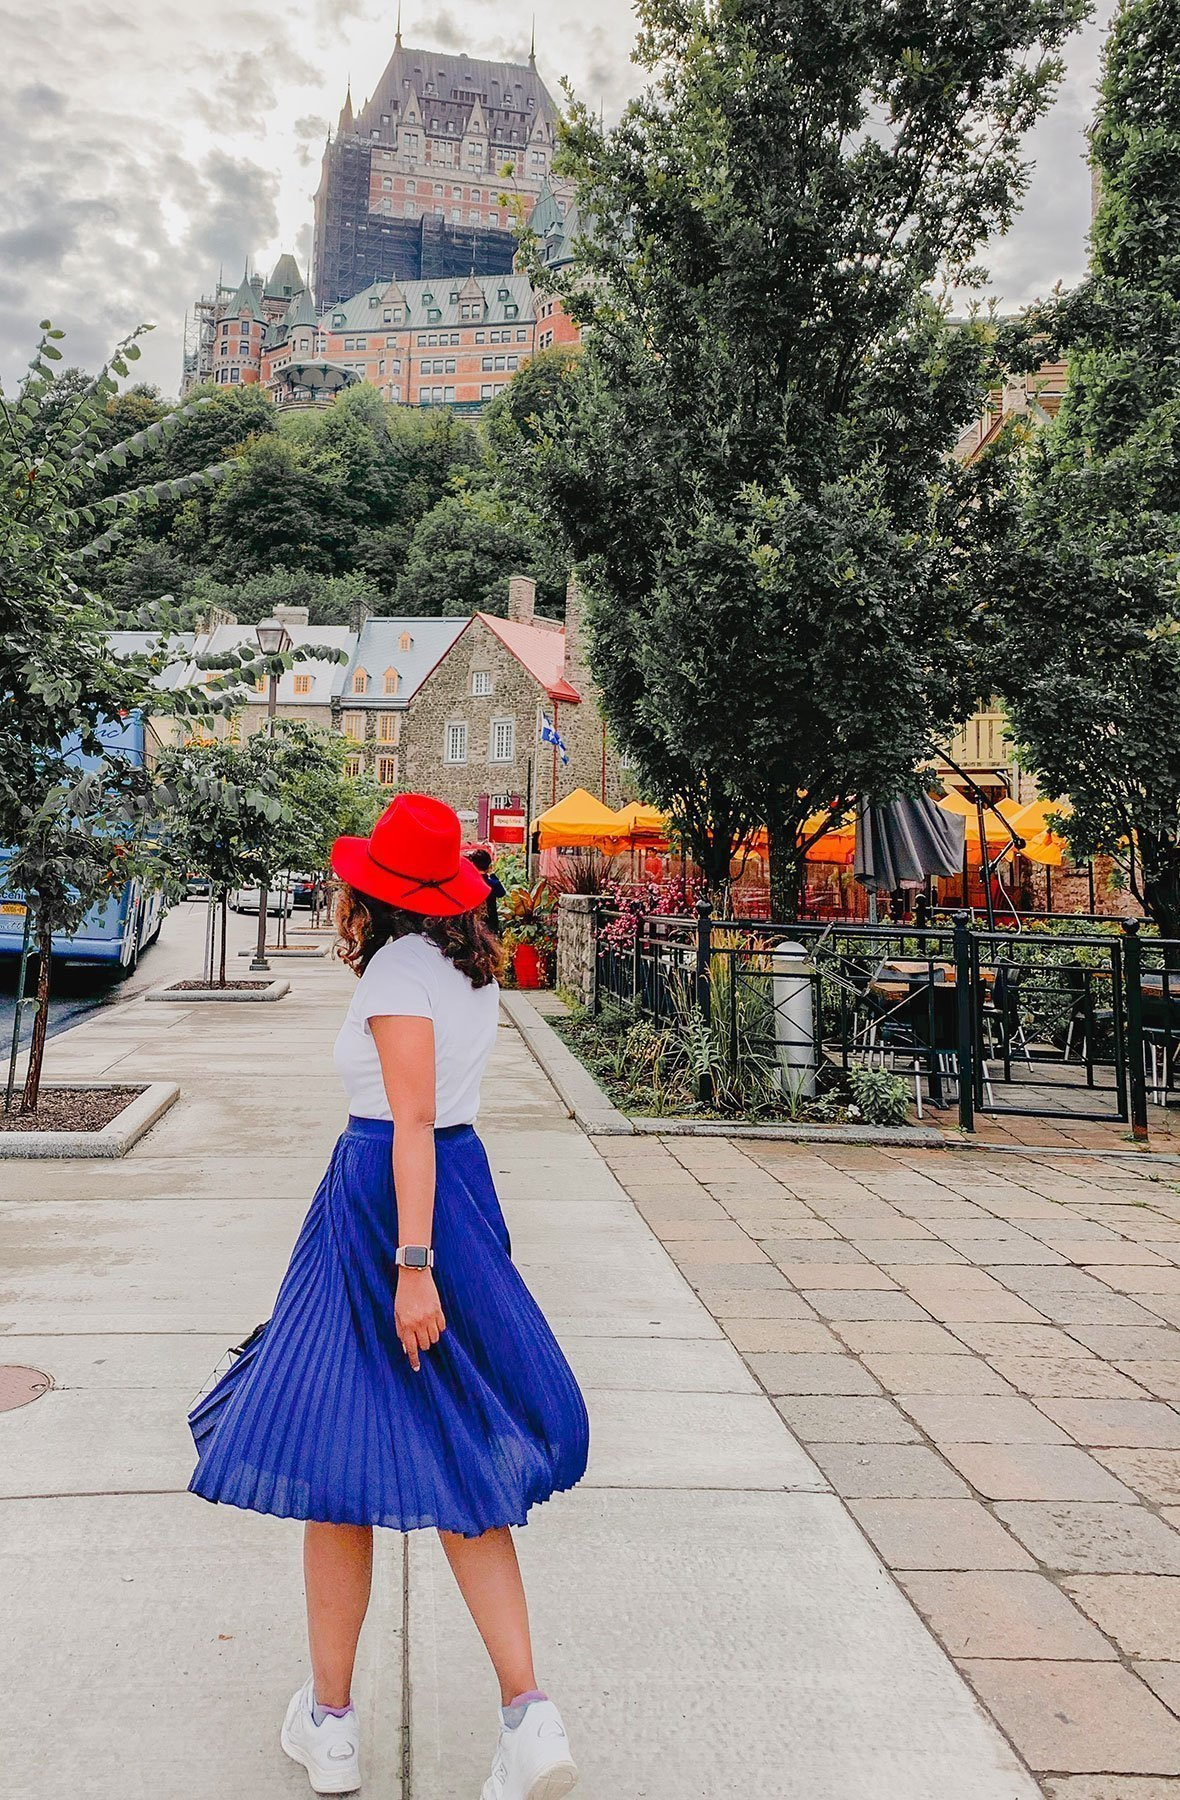 Chateau_Frontenac_from_old_quebec3